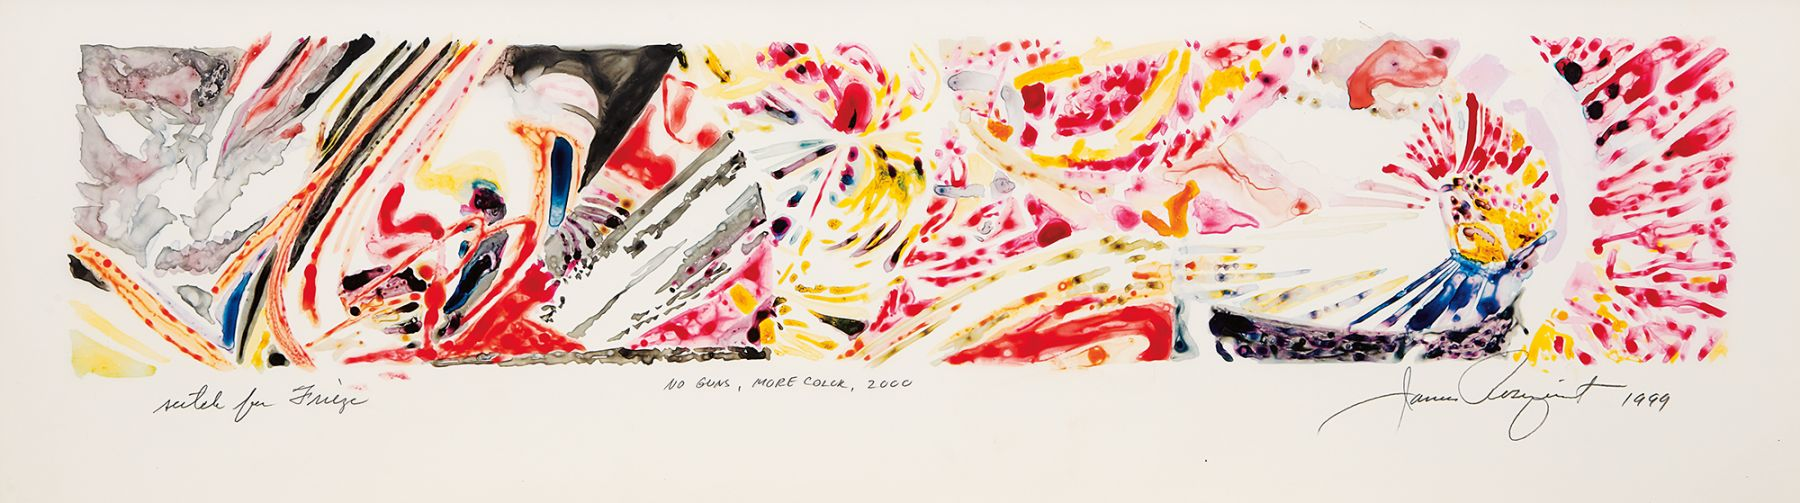 James Rosenquist, No Guns, More Color, 1999